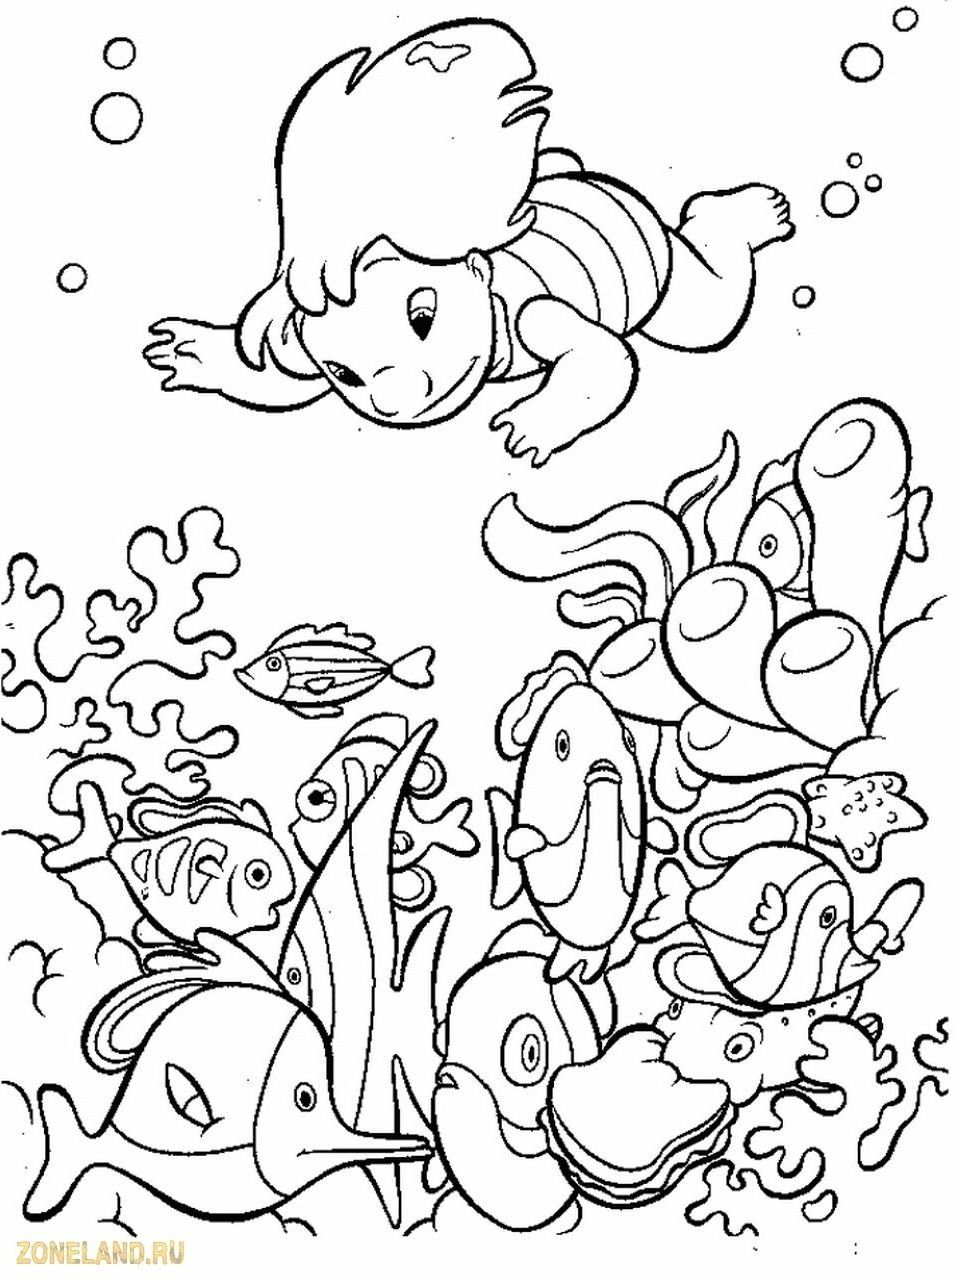 100 free printable ocean coloring pages killer whale coloring